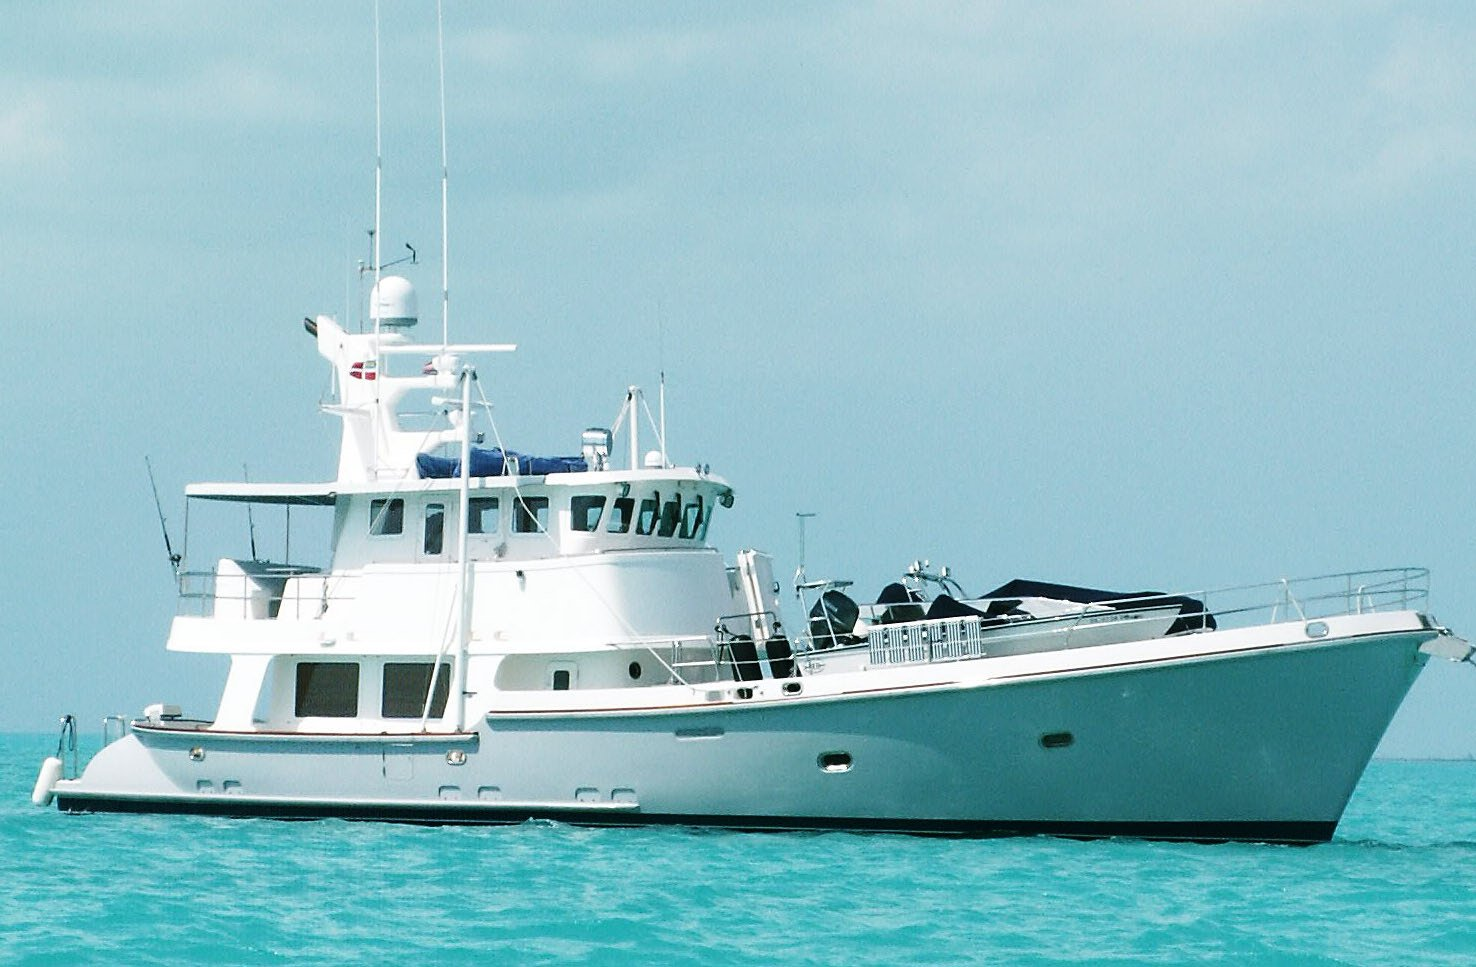 Nordhavn Europe Home Of The Worlds Most Capable Trawler